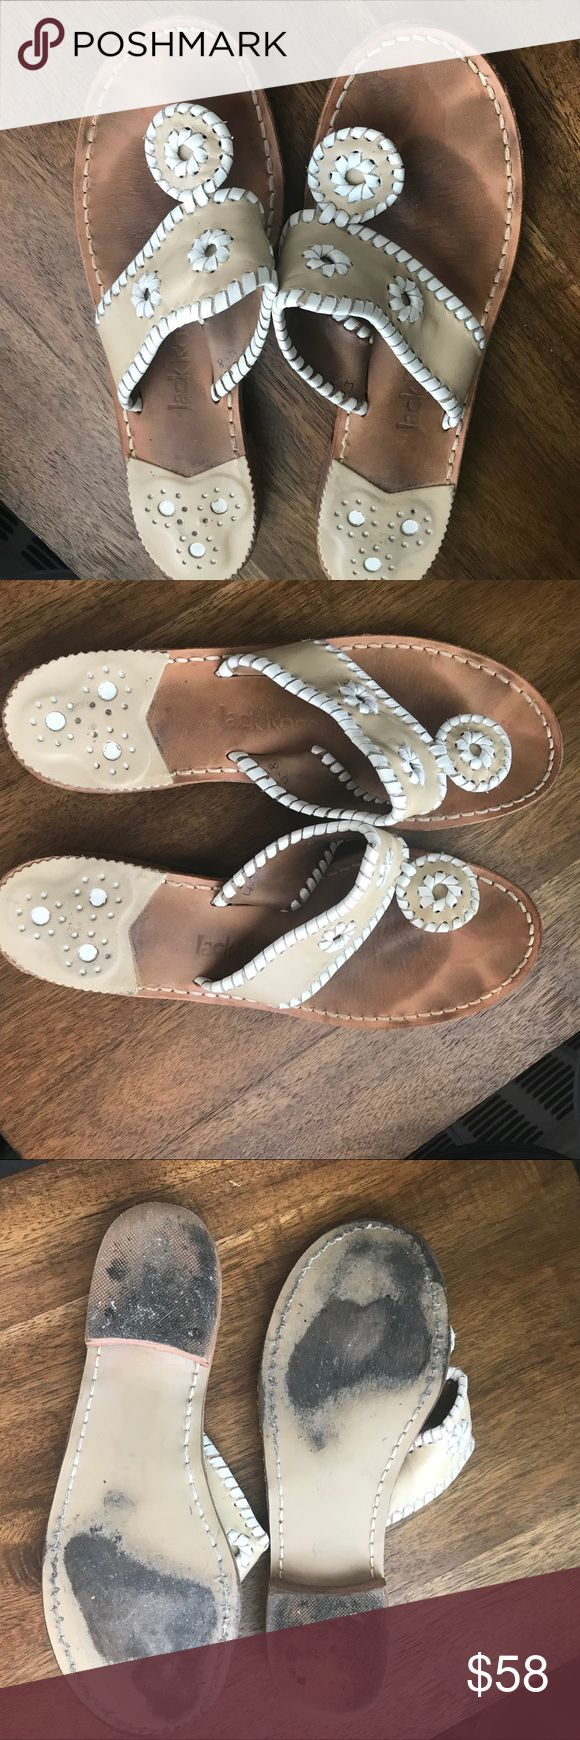 Jack Rogers Palm Beach Sandal Jack Rogers Palm Beach Sandal Bone and white color Some wear - see pics for reference Very good conditoon Jack Rogers Shoes Sandals